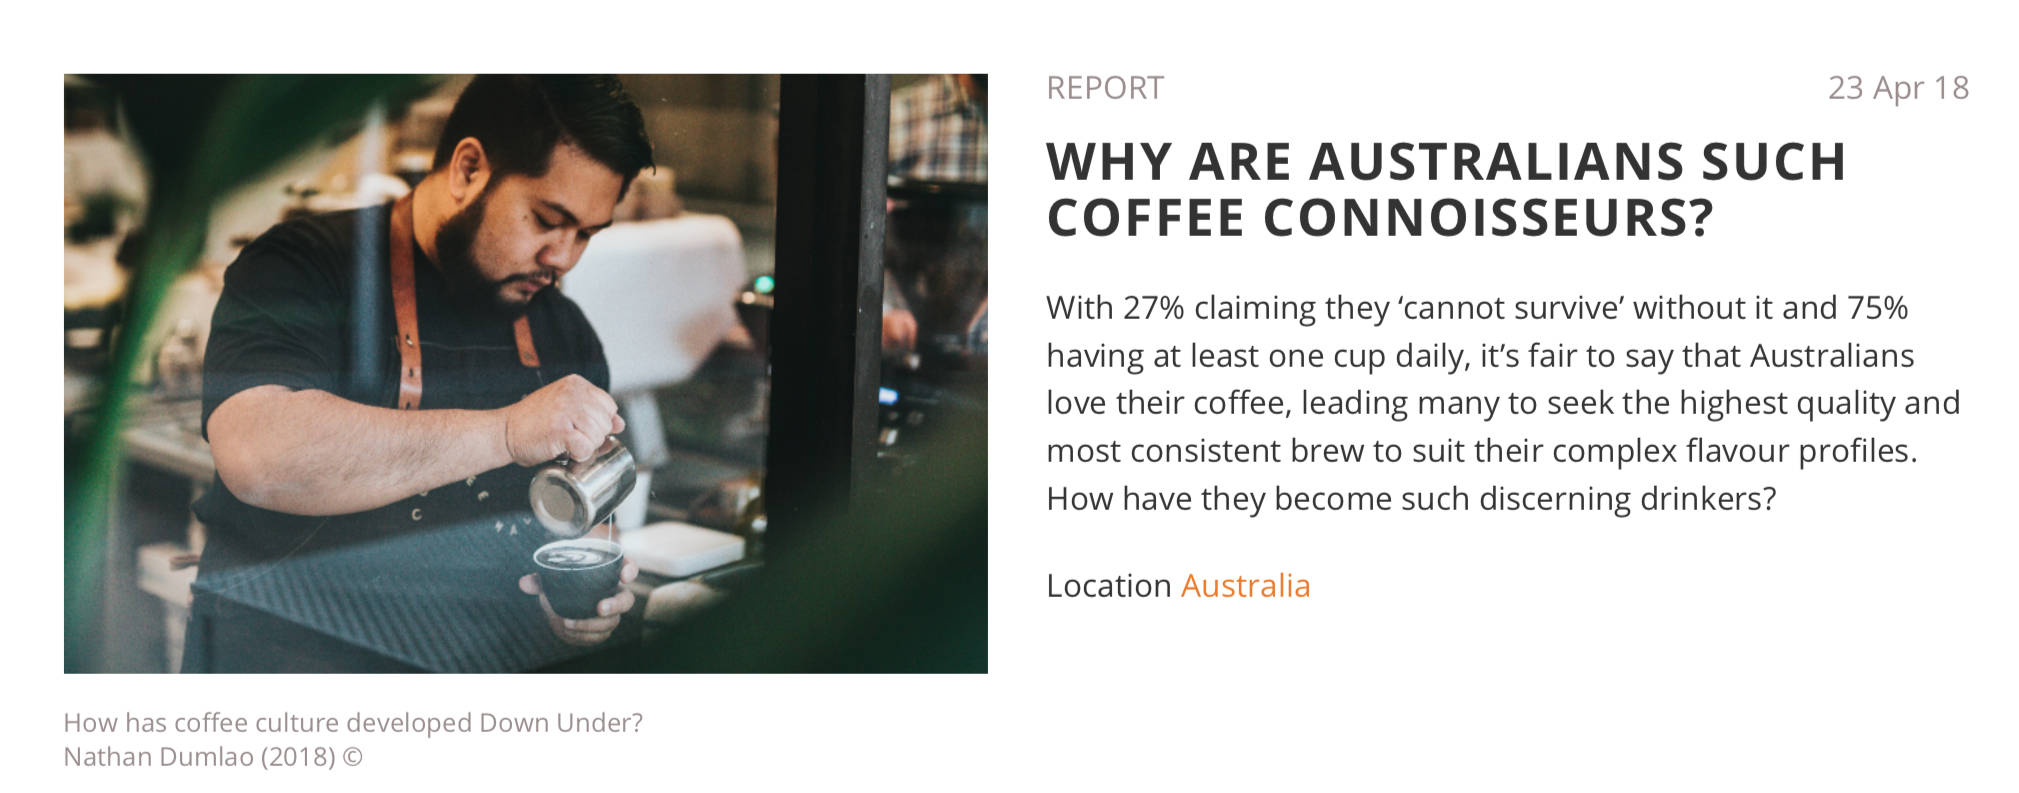 Article: Why are Australians such coffee connoisseurs?